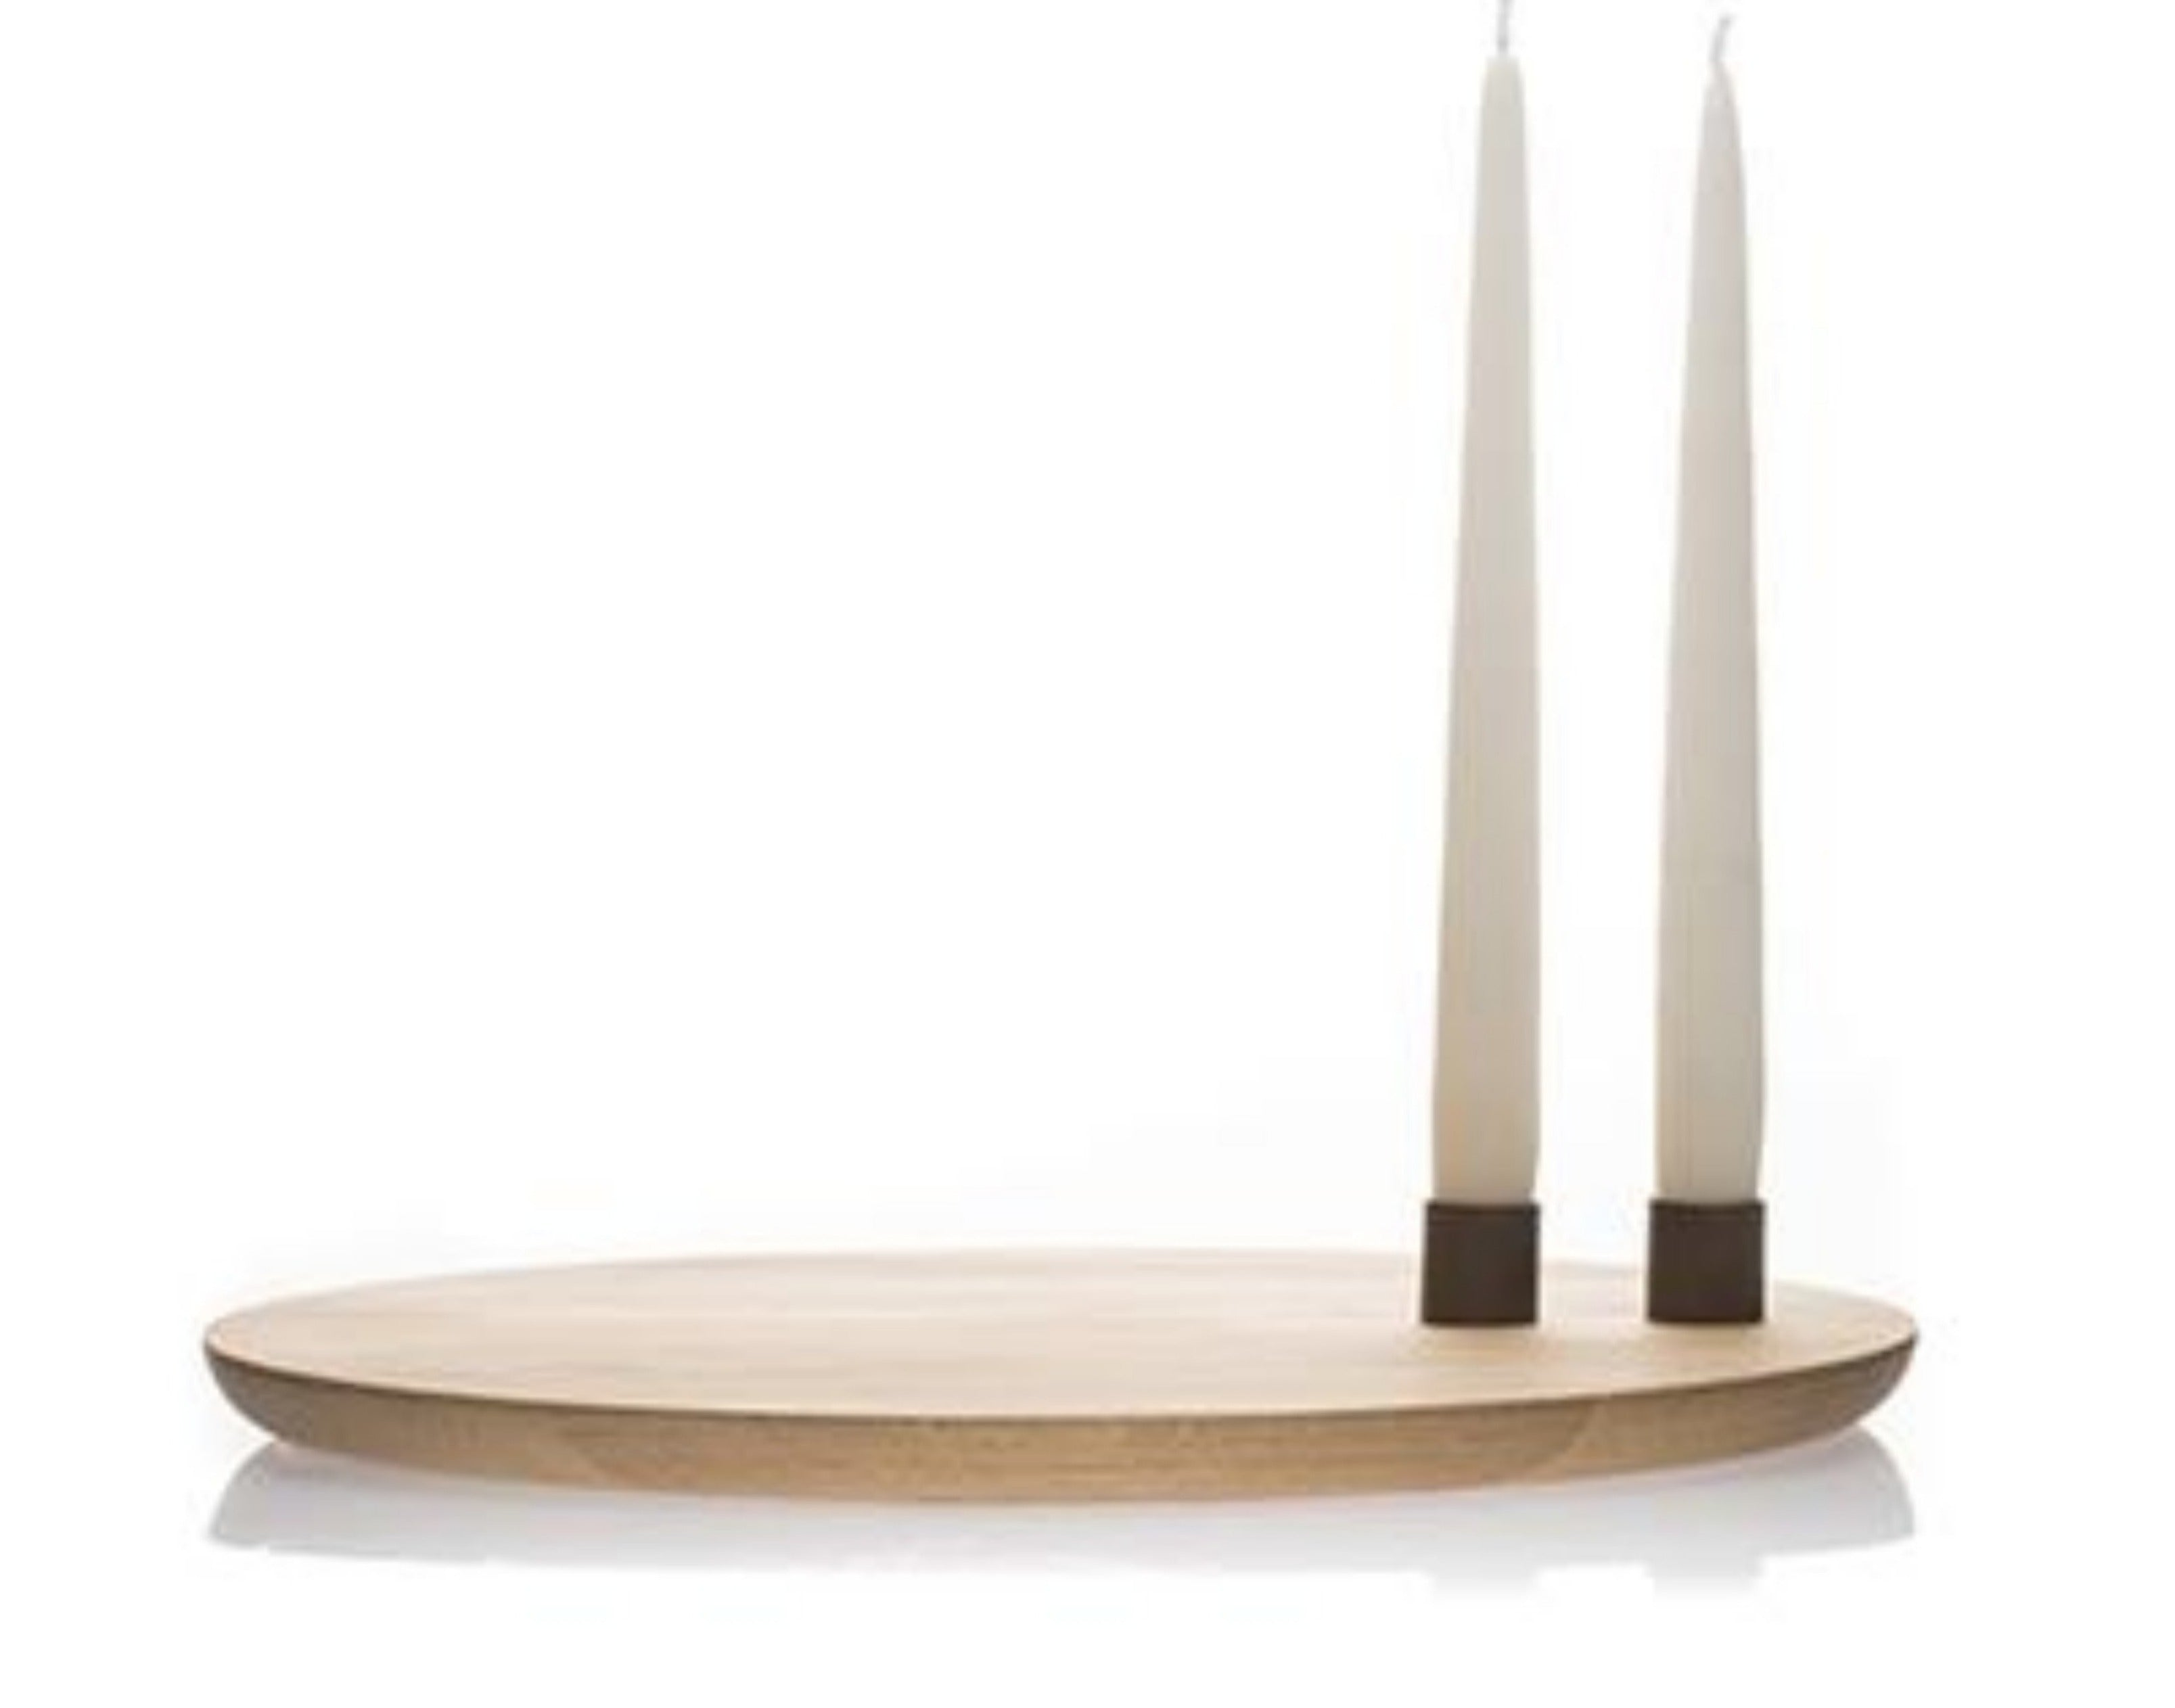 Fferrone Convivio Serving Board